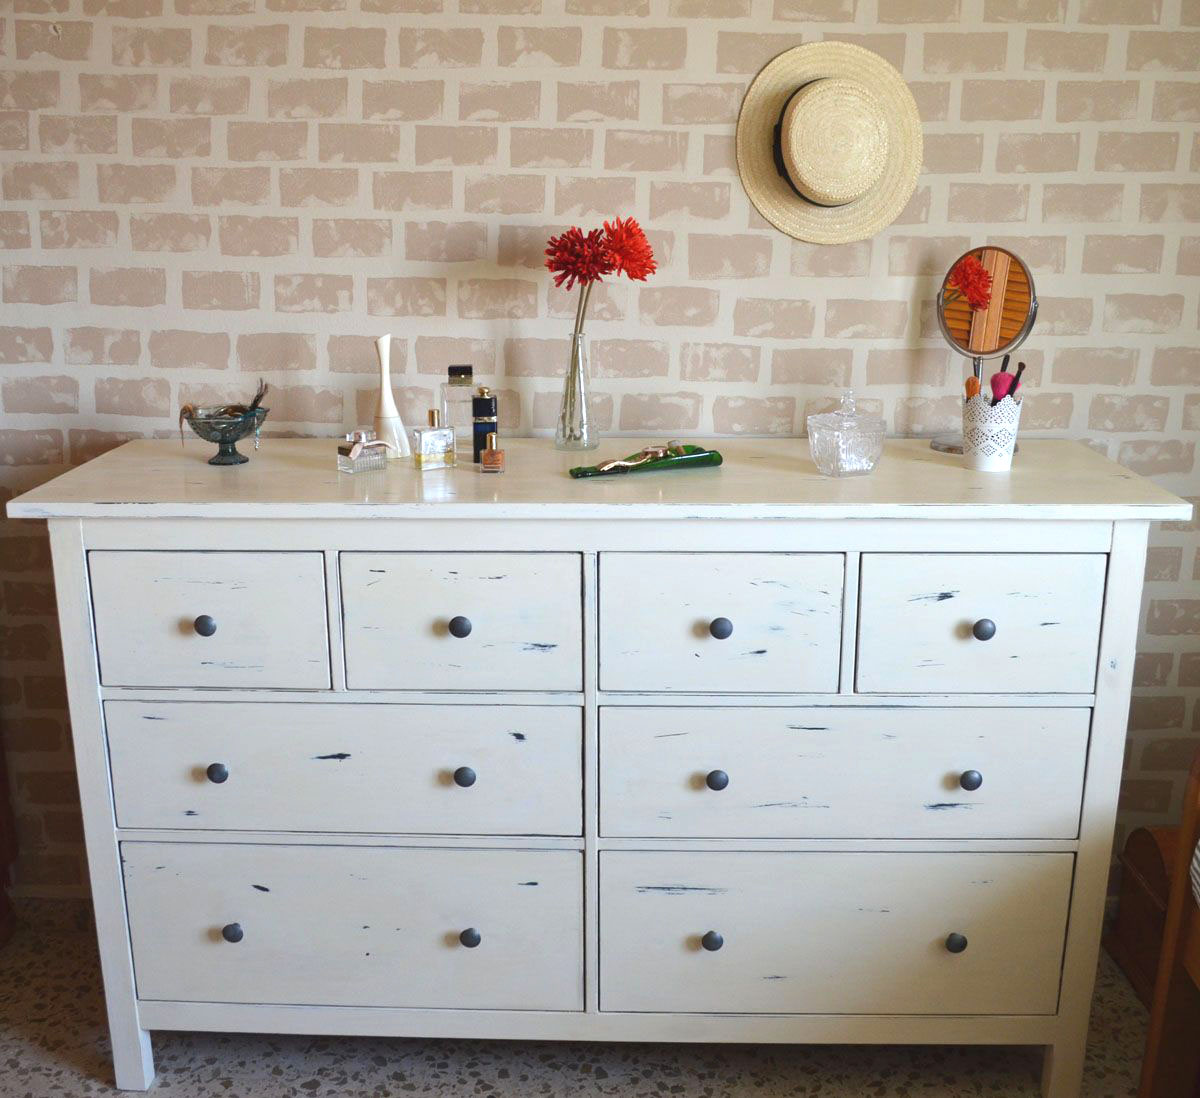 C moda hemnes decapada en blanco departamento de ideas for Envejecer mueble blanco ikea